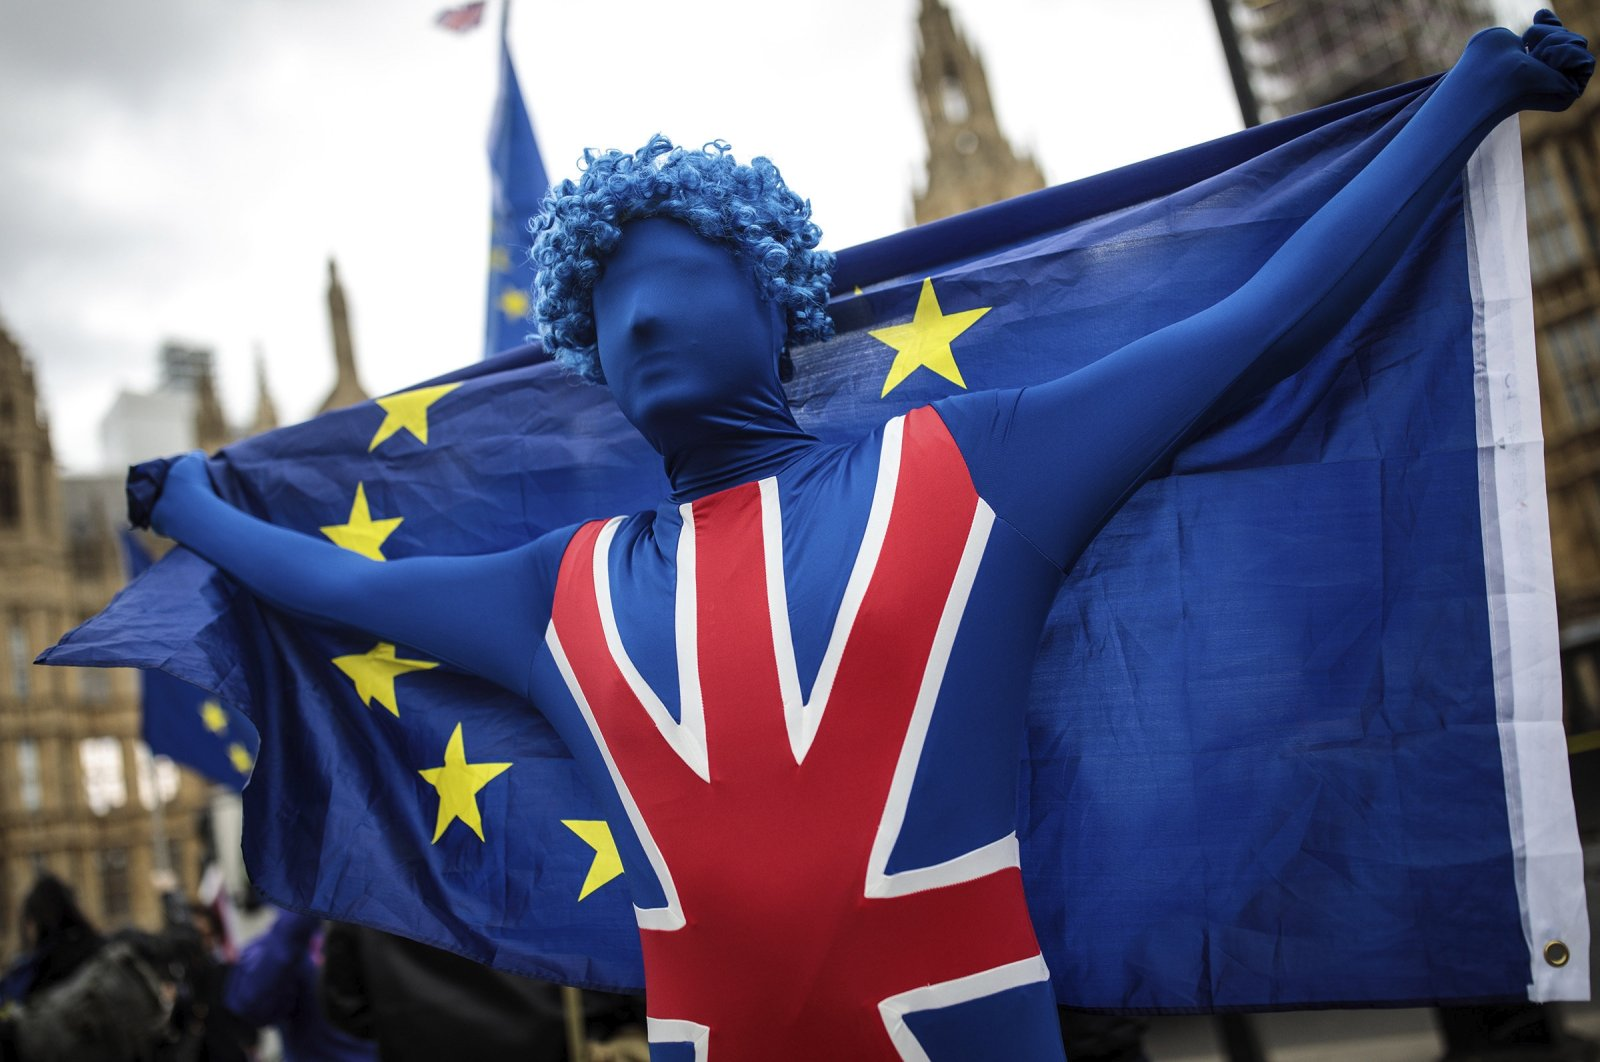 An anti-Brexit campaigner demonstrates outside the Houses of Parliament with EU flags as MPs return following the Easter break in London, England, April 16, 2018. (Getty Images)